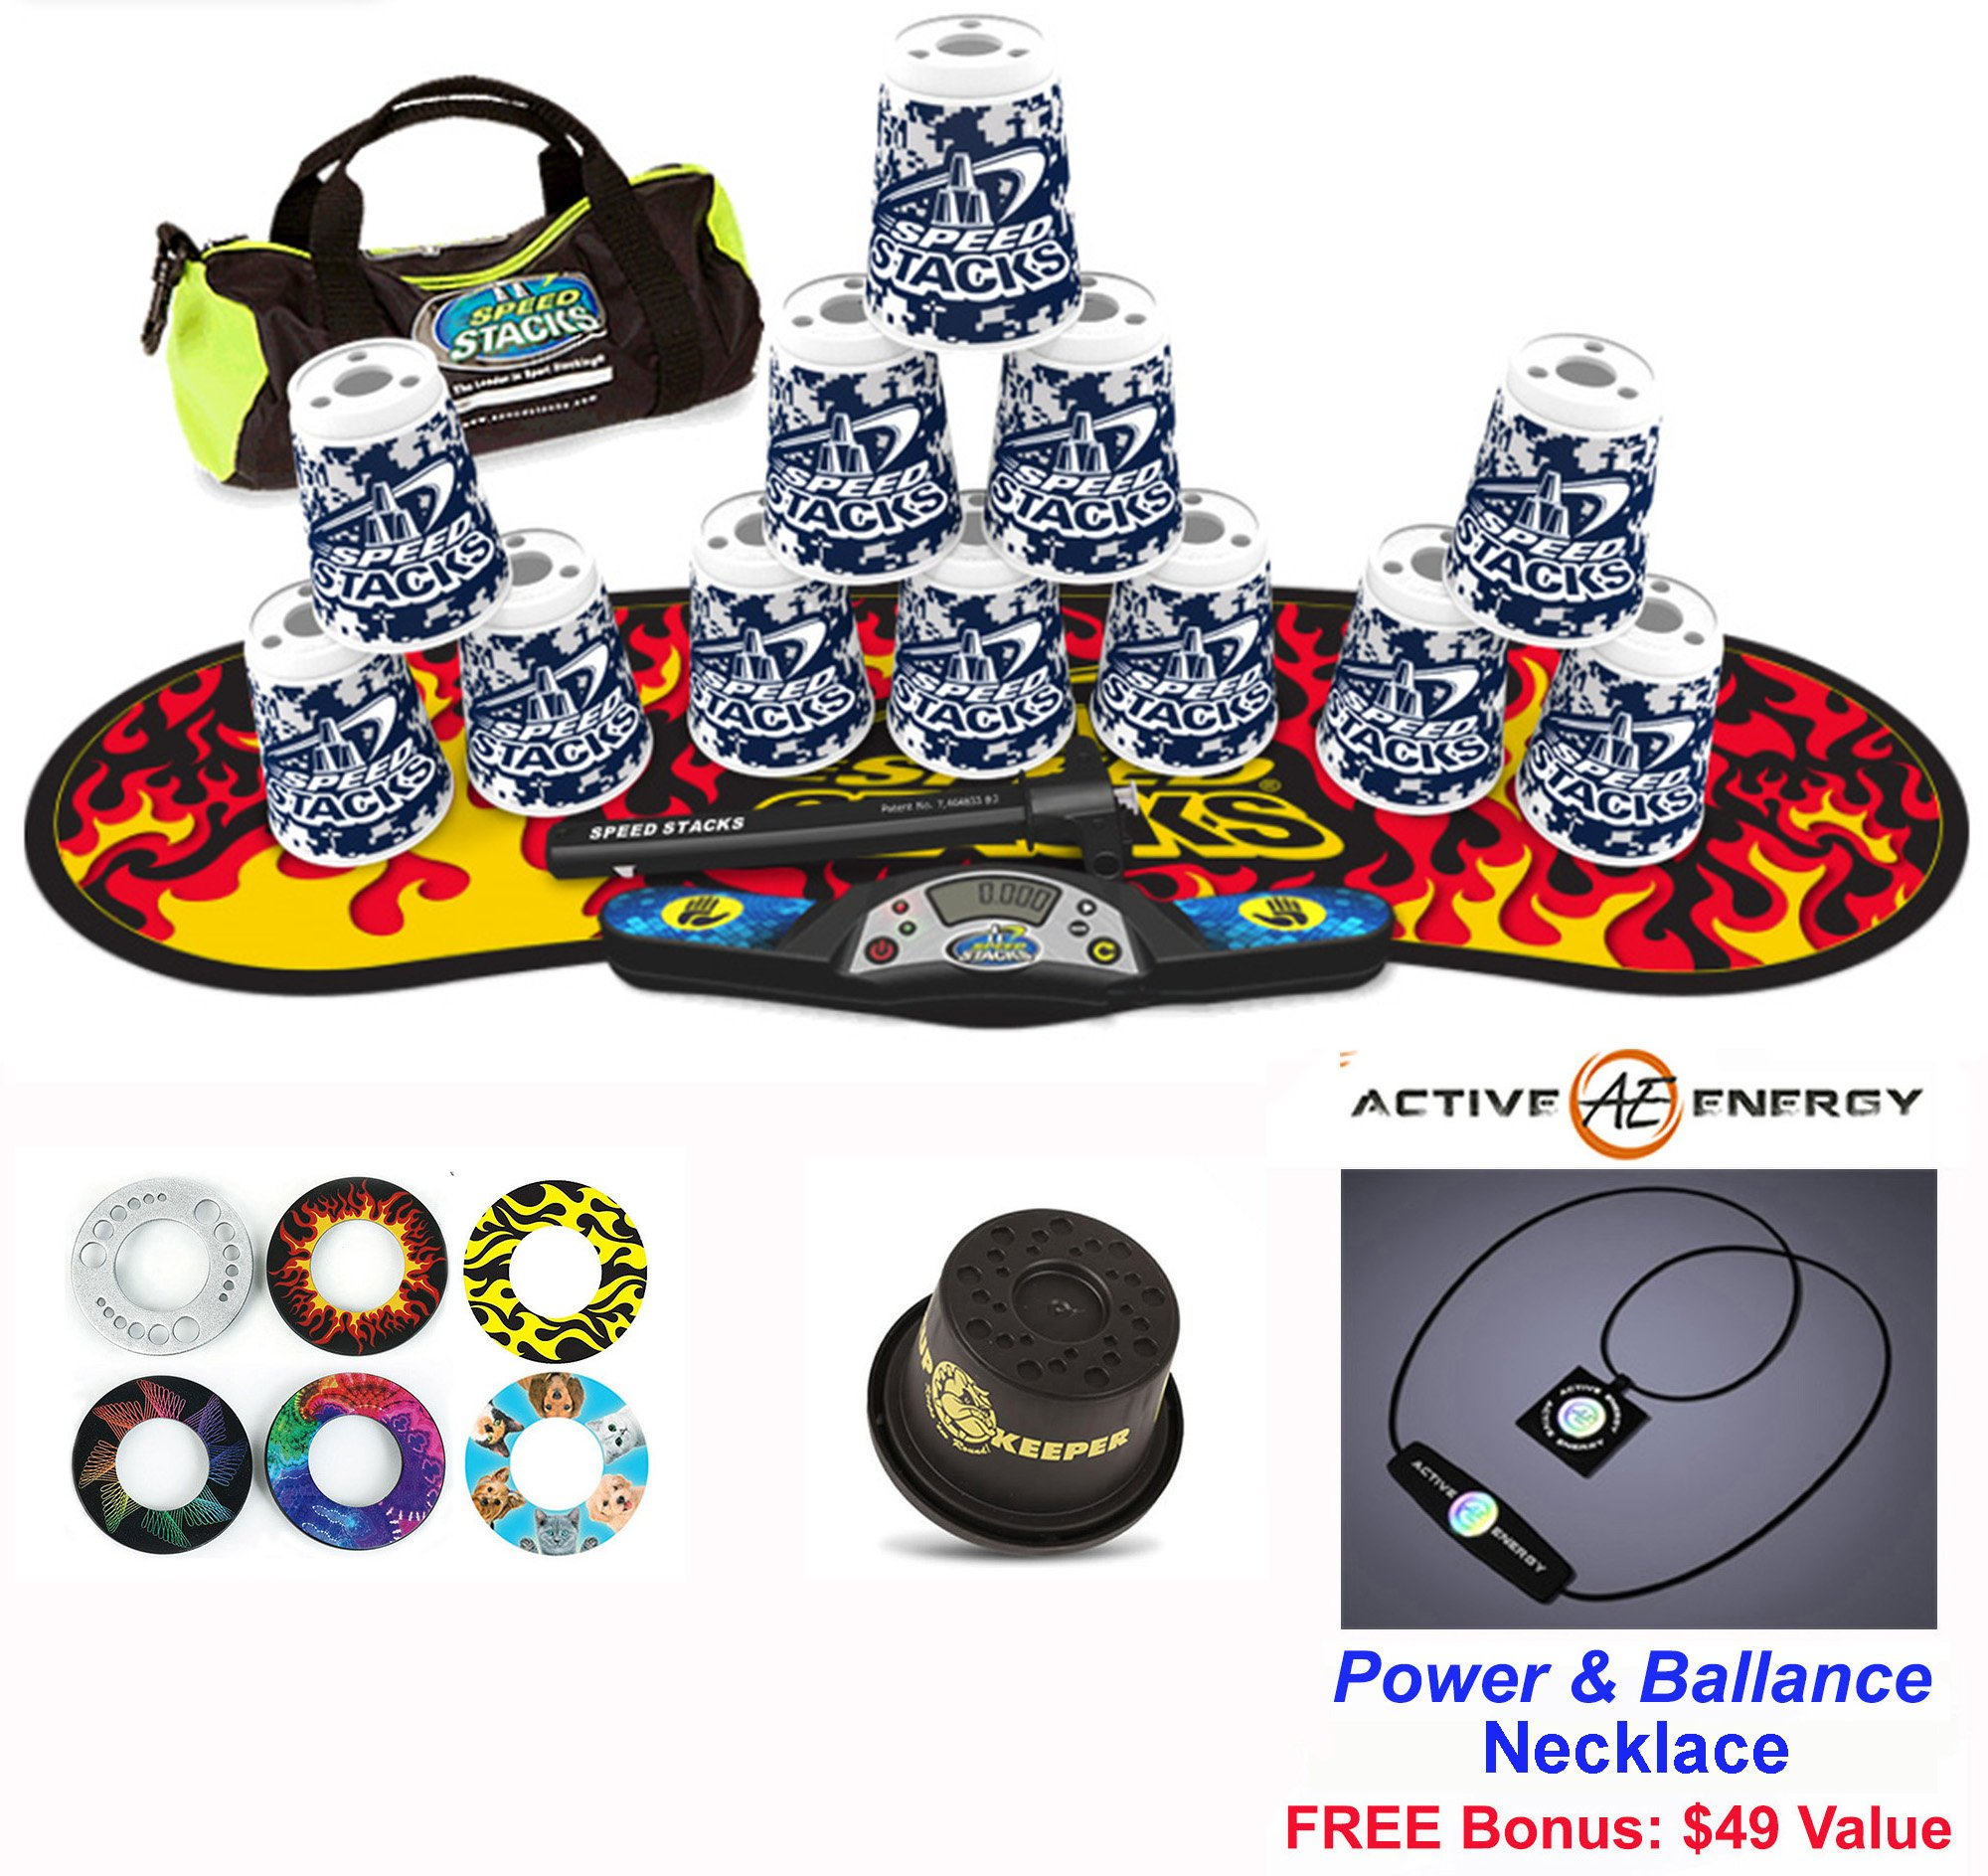 Speed Stacks Combo Set 'The Works'': 12 DIGITAL CAMO 4'' Cups, Black Flame Gen 3 Mat, G4 Pro Timer, Cup Keeper, Stem, Gear Bag + Active Energy Necklace